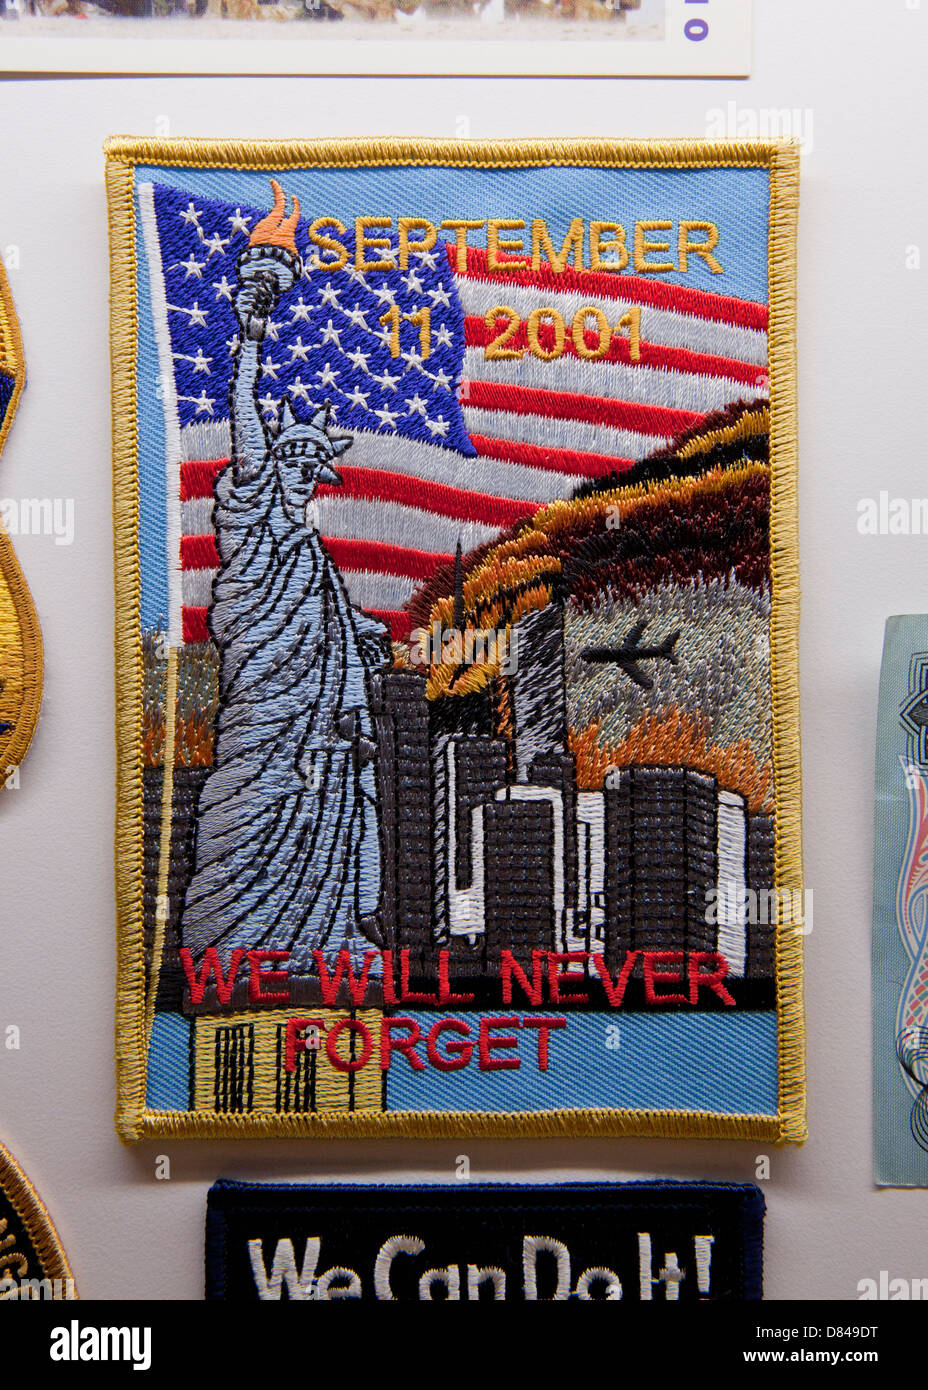 911 memorial patch - Stock Image